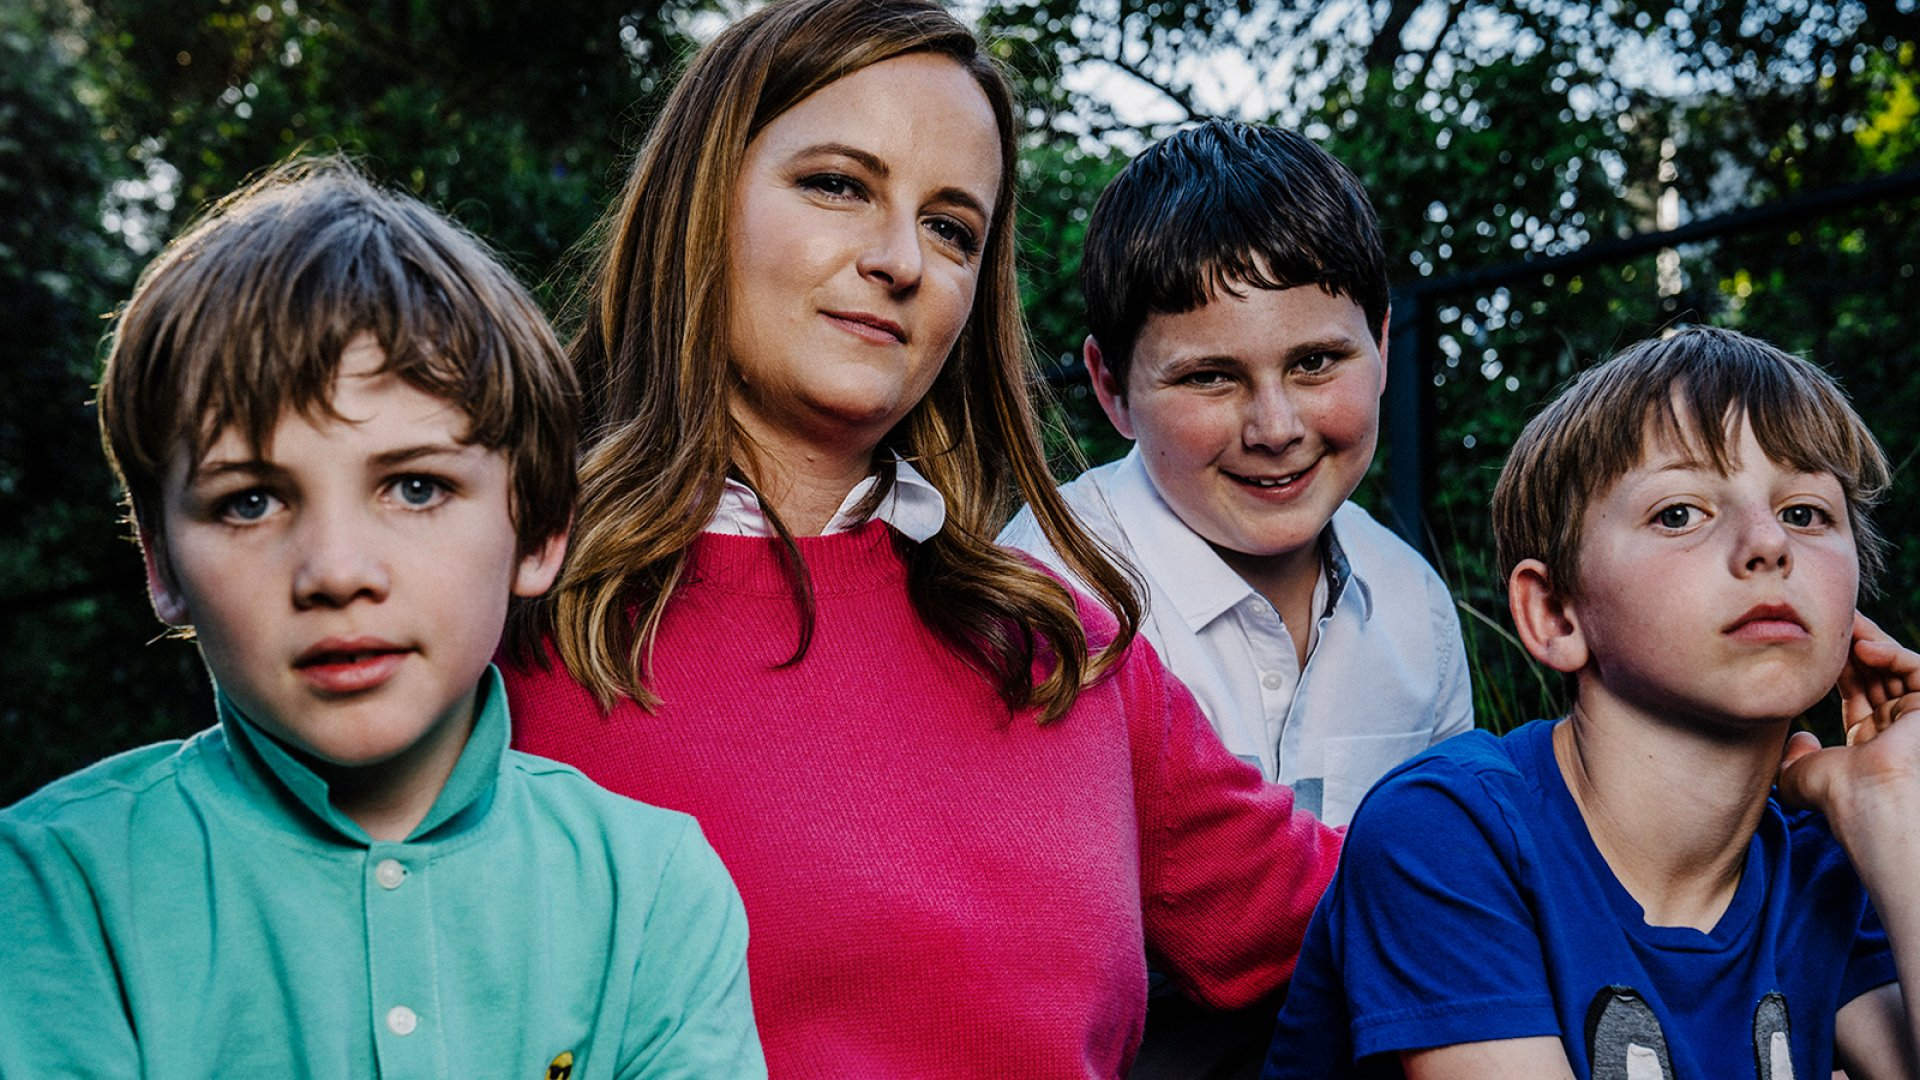 Amy Norman and her children. From left to right: her stepson, Rex, her oldest son, Cole, and her son Will, who was born shortly after she launched Little Passports in 2009.